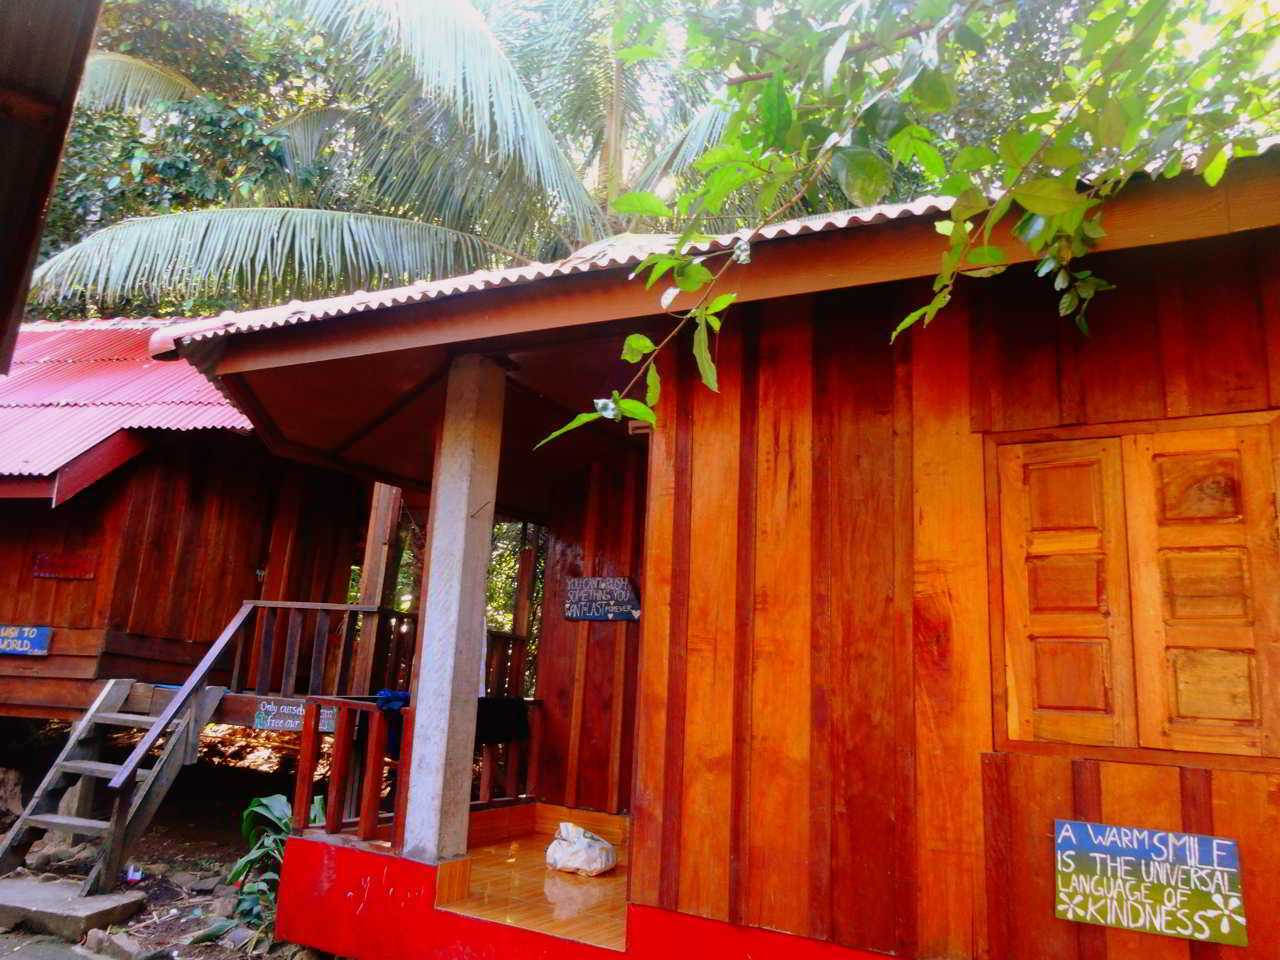 daauw room on daauw homestay